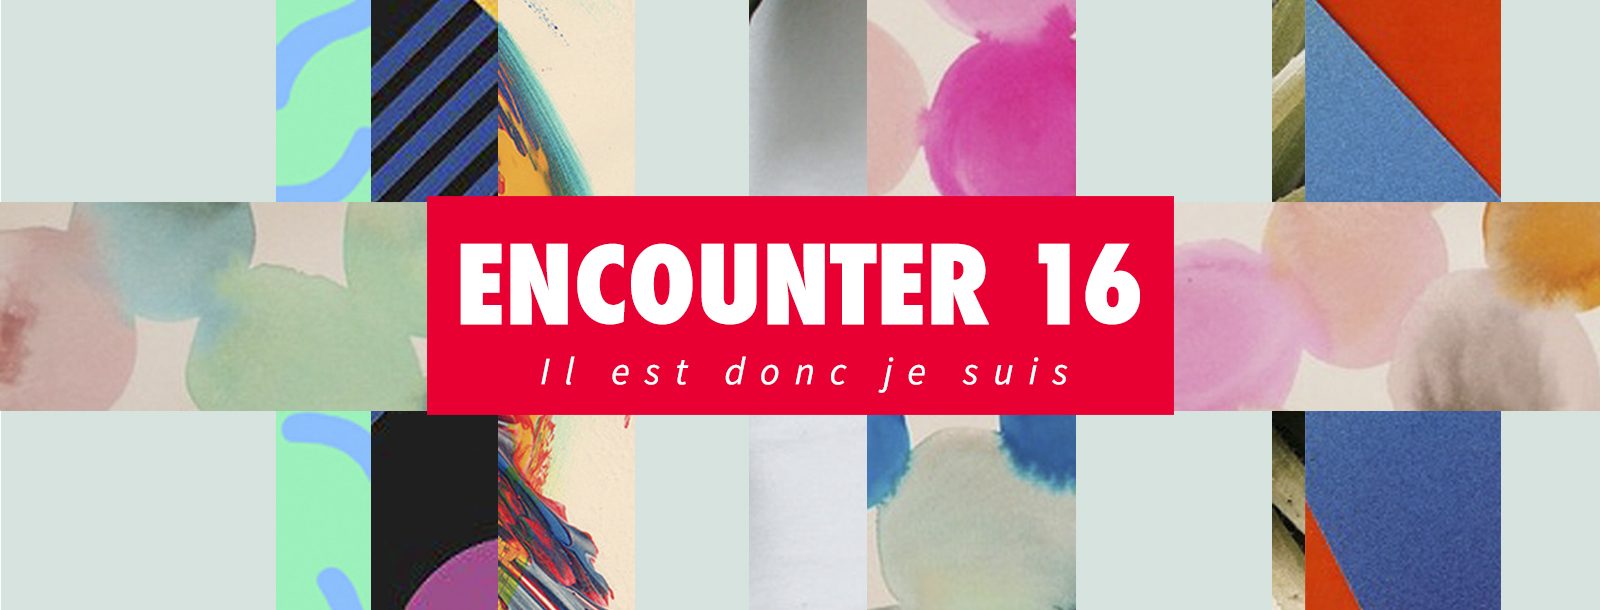 Encounter 2016